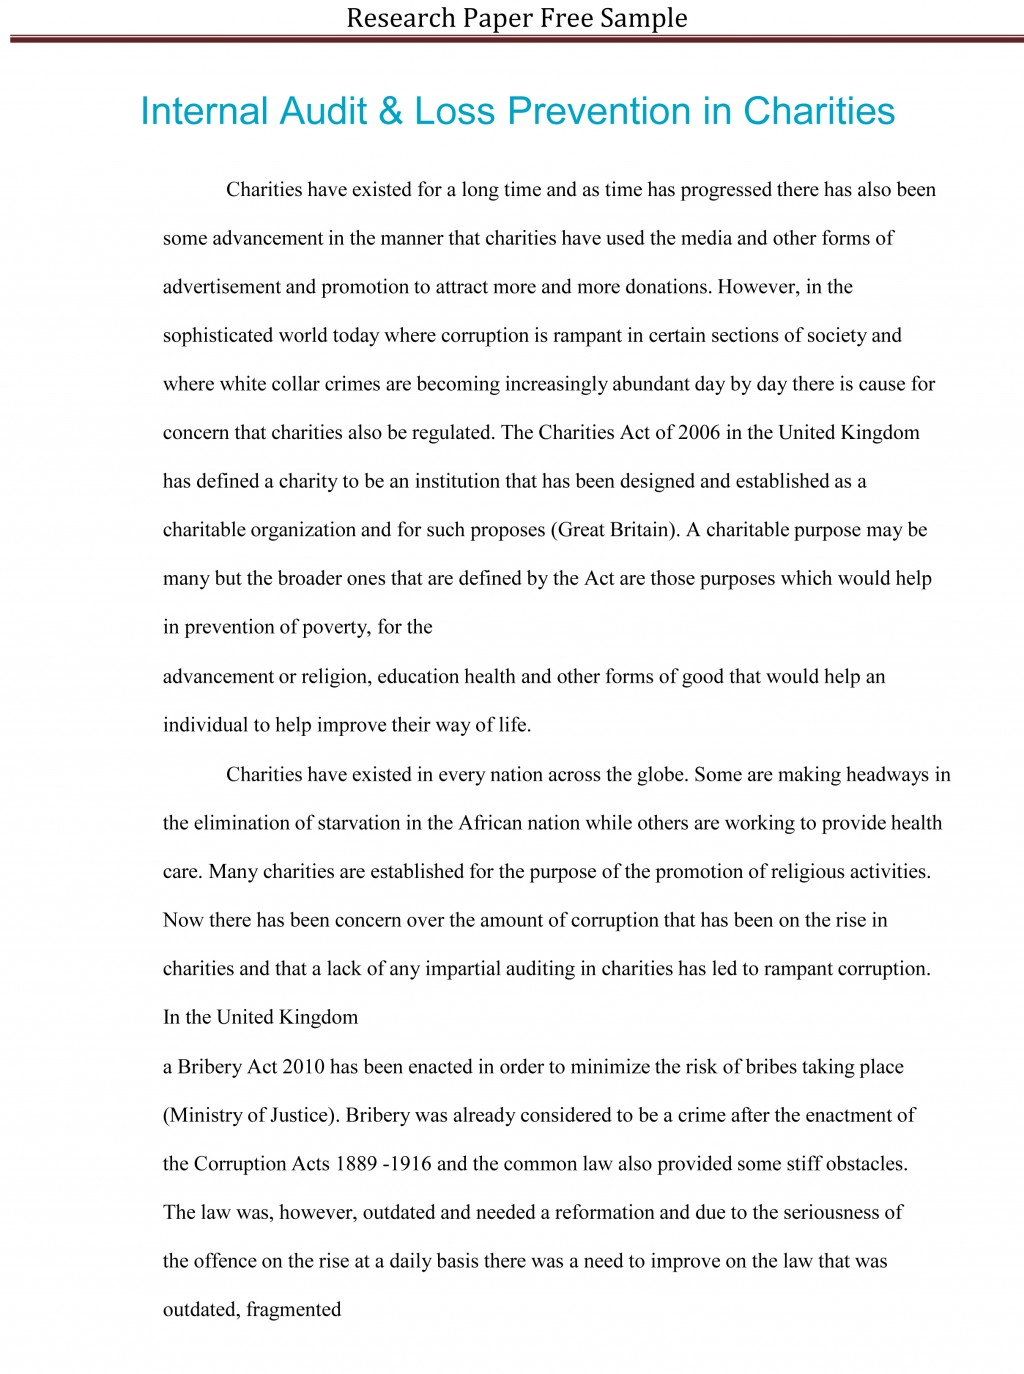 006 Research Paper Sample Argumentative Topics Wonderful Education Essay On About Large